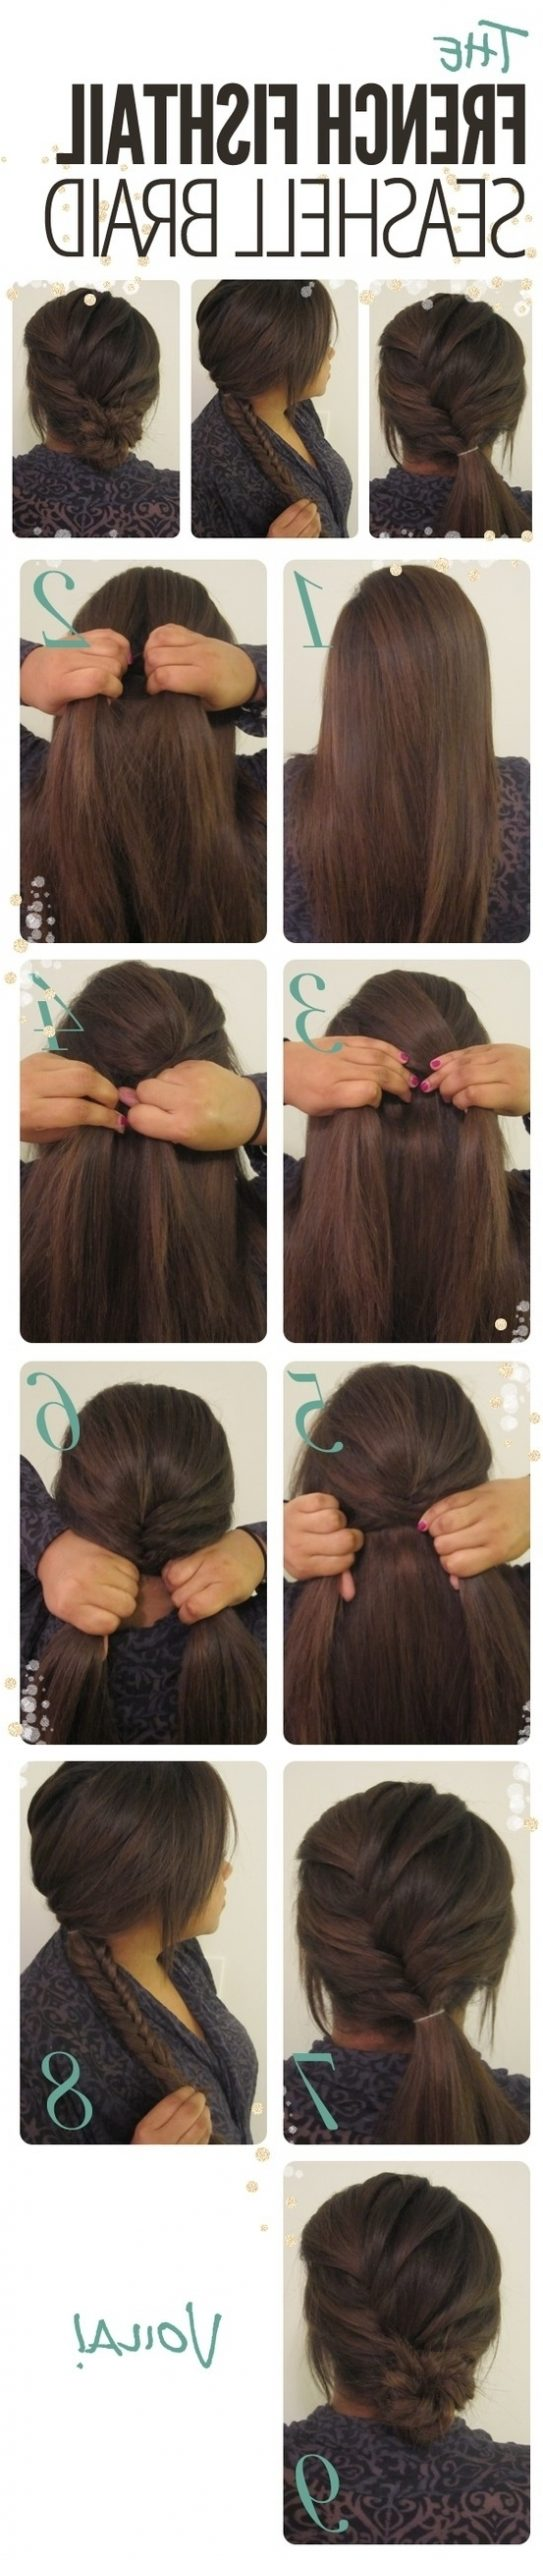 25 Ways To Style Beautiful Summer Hairstyles Hairstyles Weekly Cute Summer Hairstyles For Medium Hair